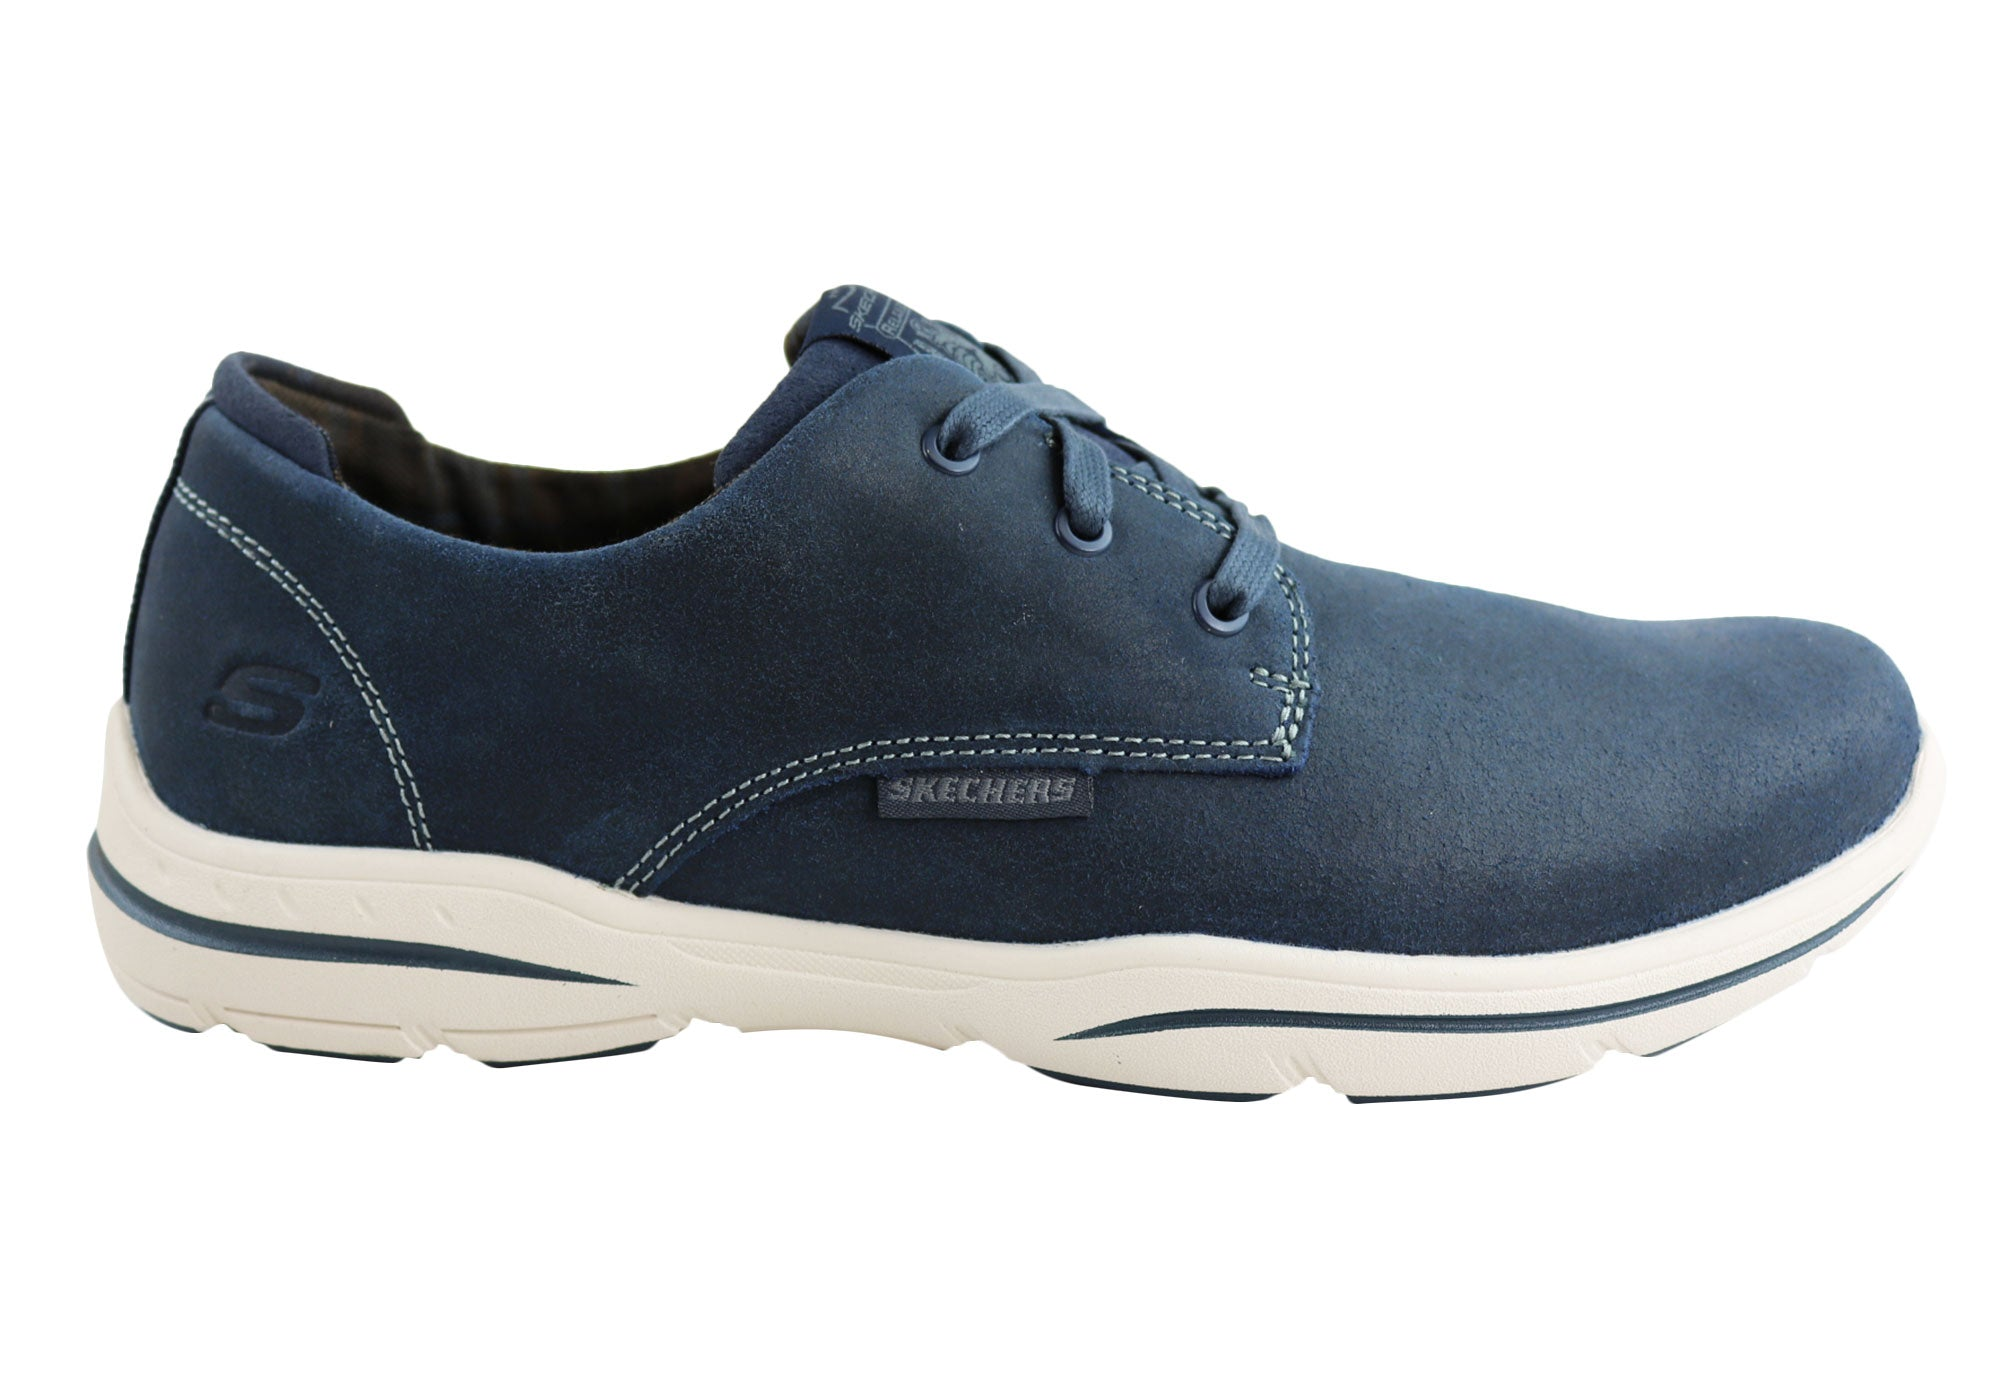 4baafcc3ae14 Home Skechers Mens Harper Epstein Relaxed Fit Mens Lace Up Casual Shoes.  Navy ...